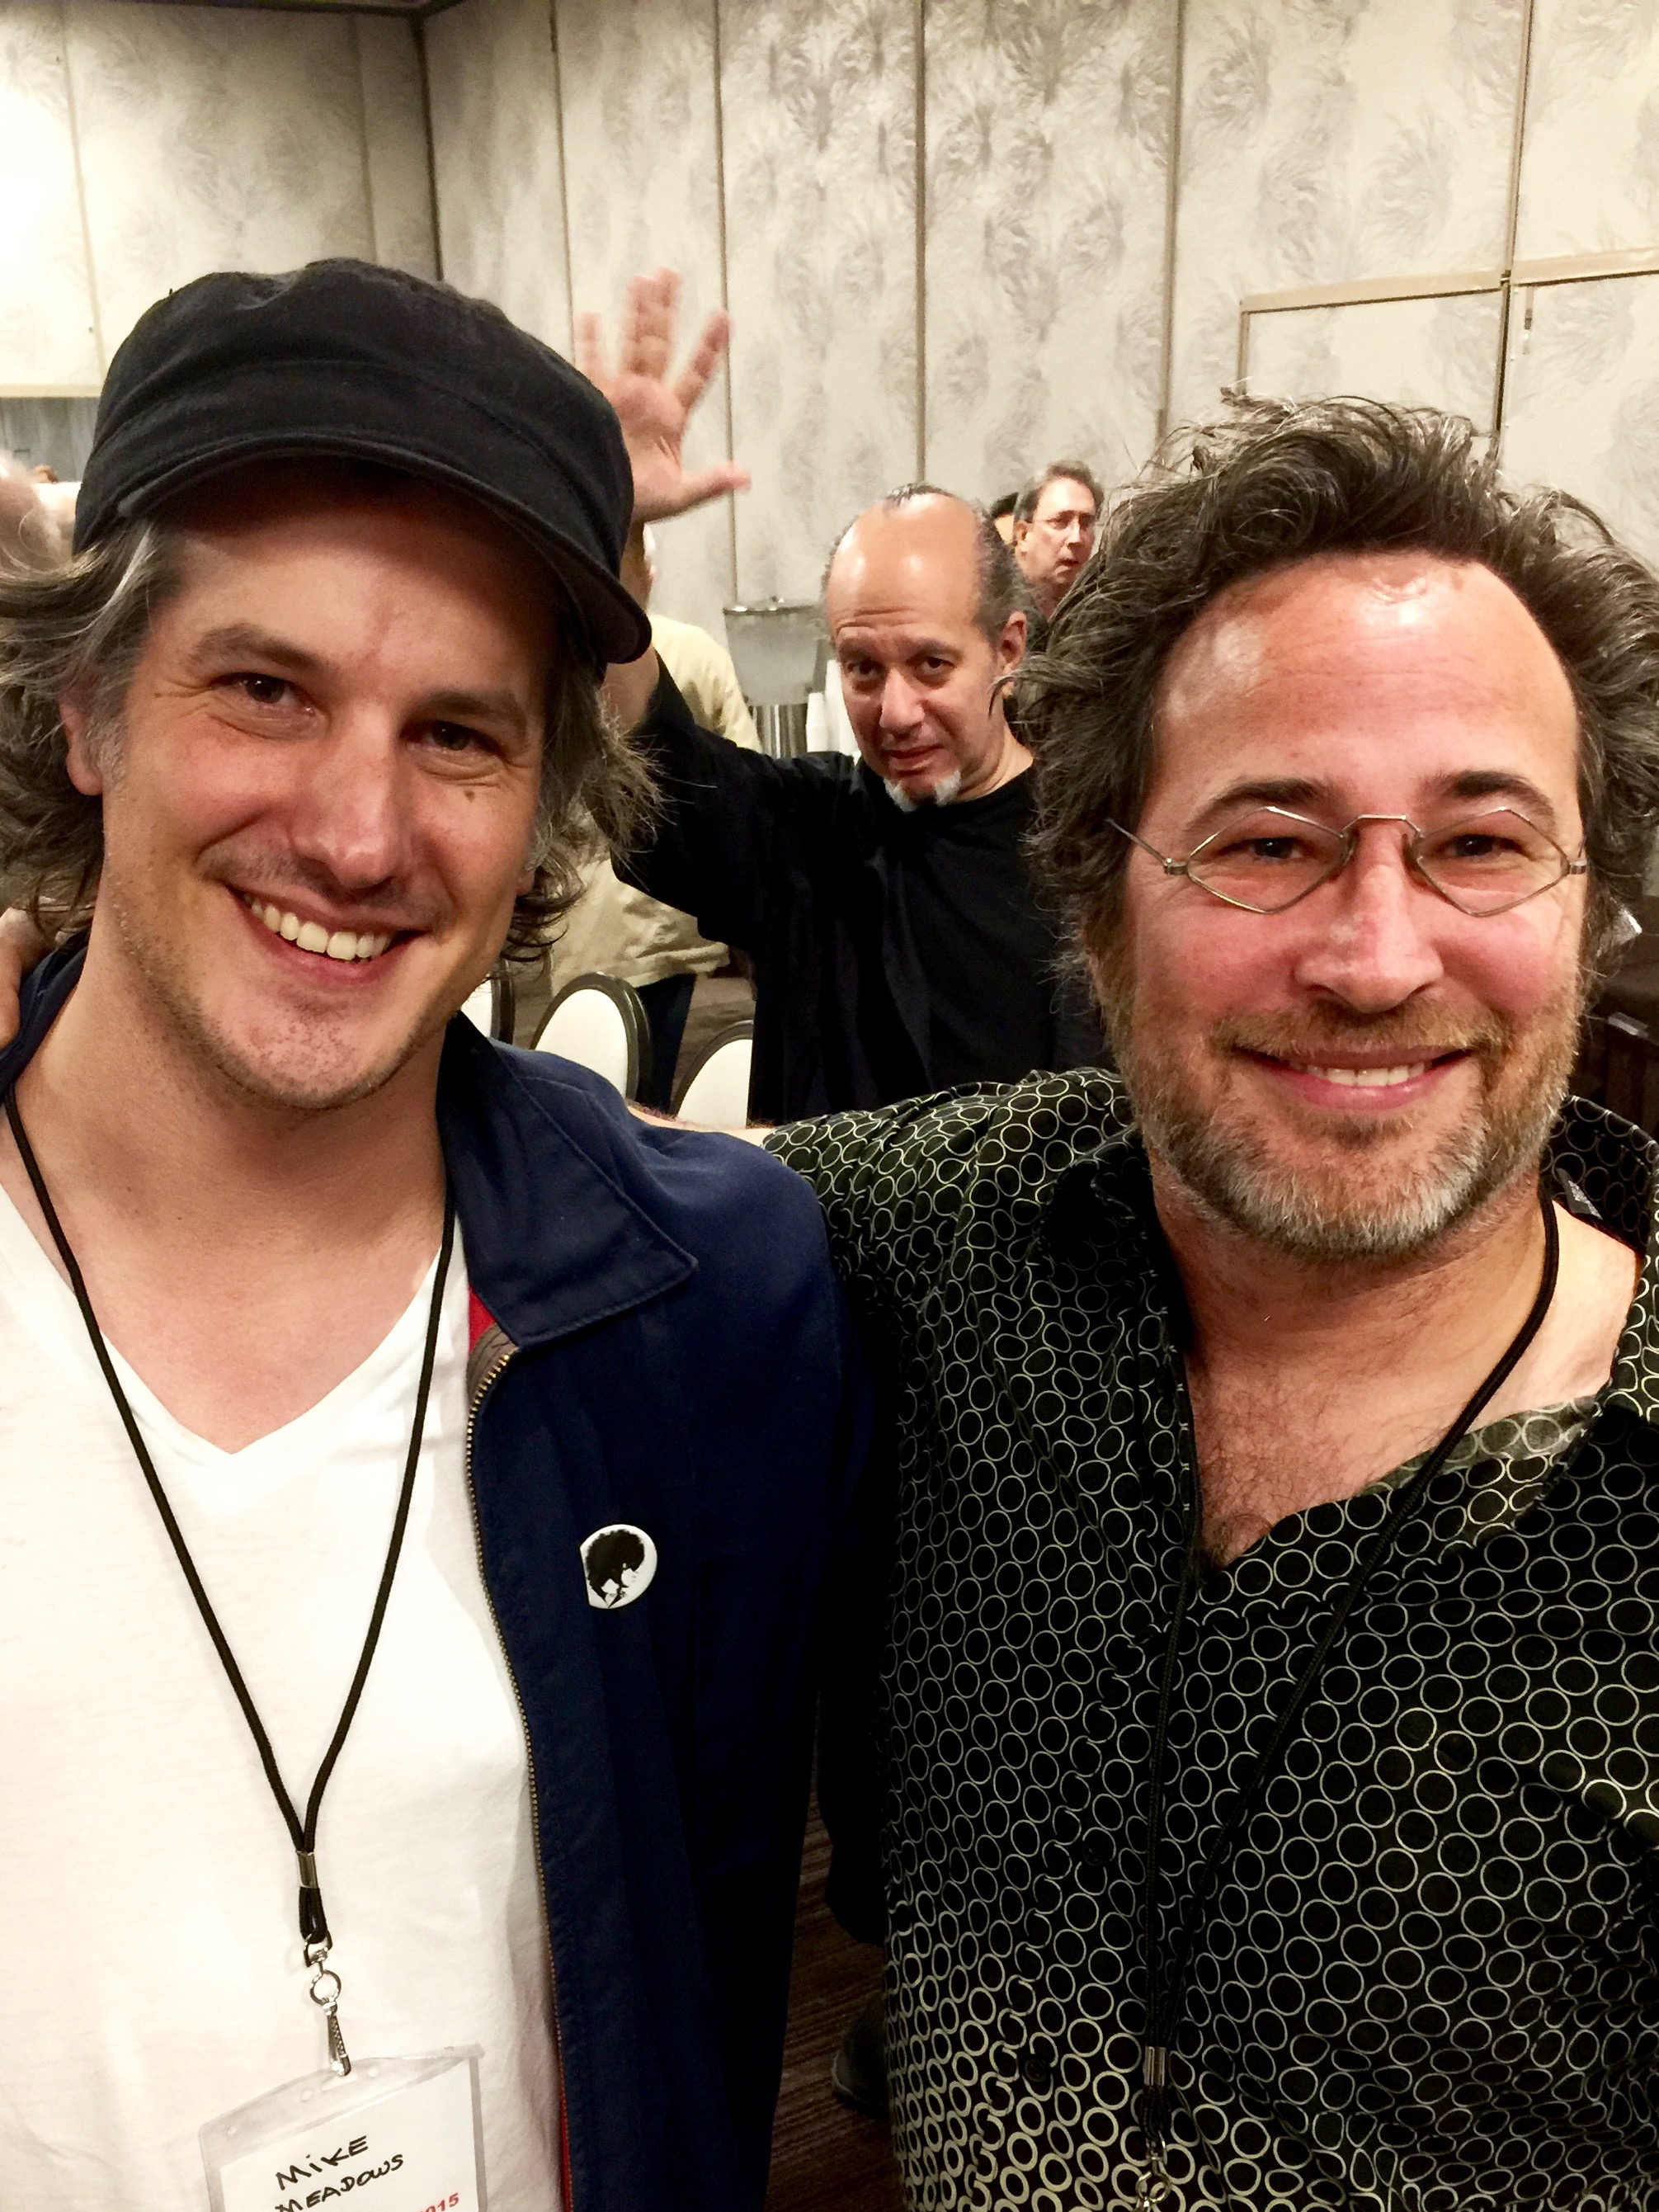 Dr. Jeremy Weiss  and grammy award-winning  Mike Meadows  photobombed by famous magician  Max Maven  at  MINDvention 2015 .